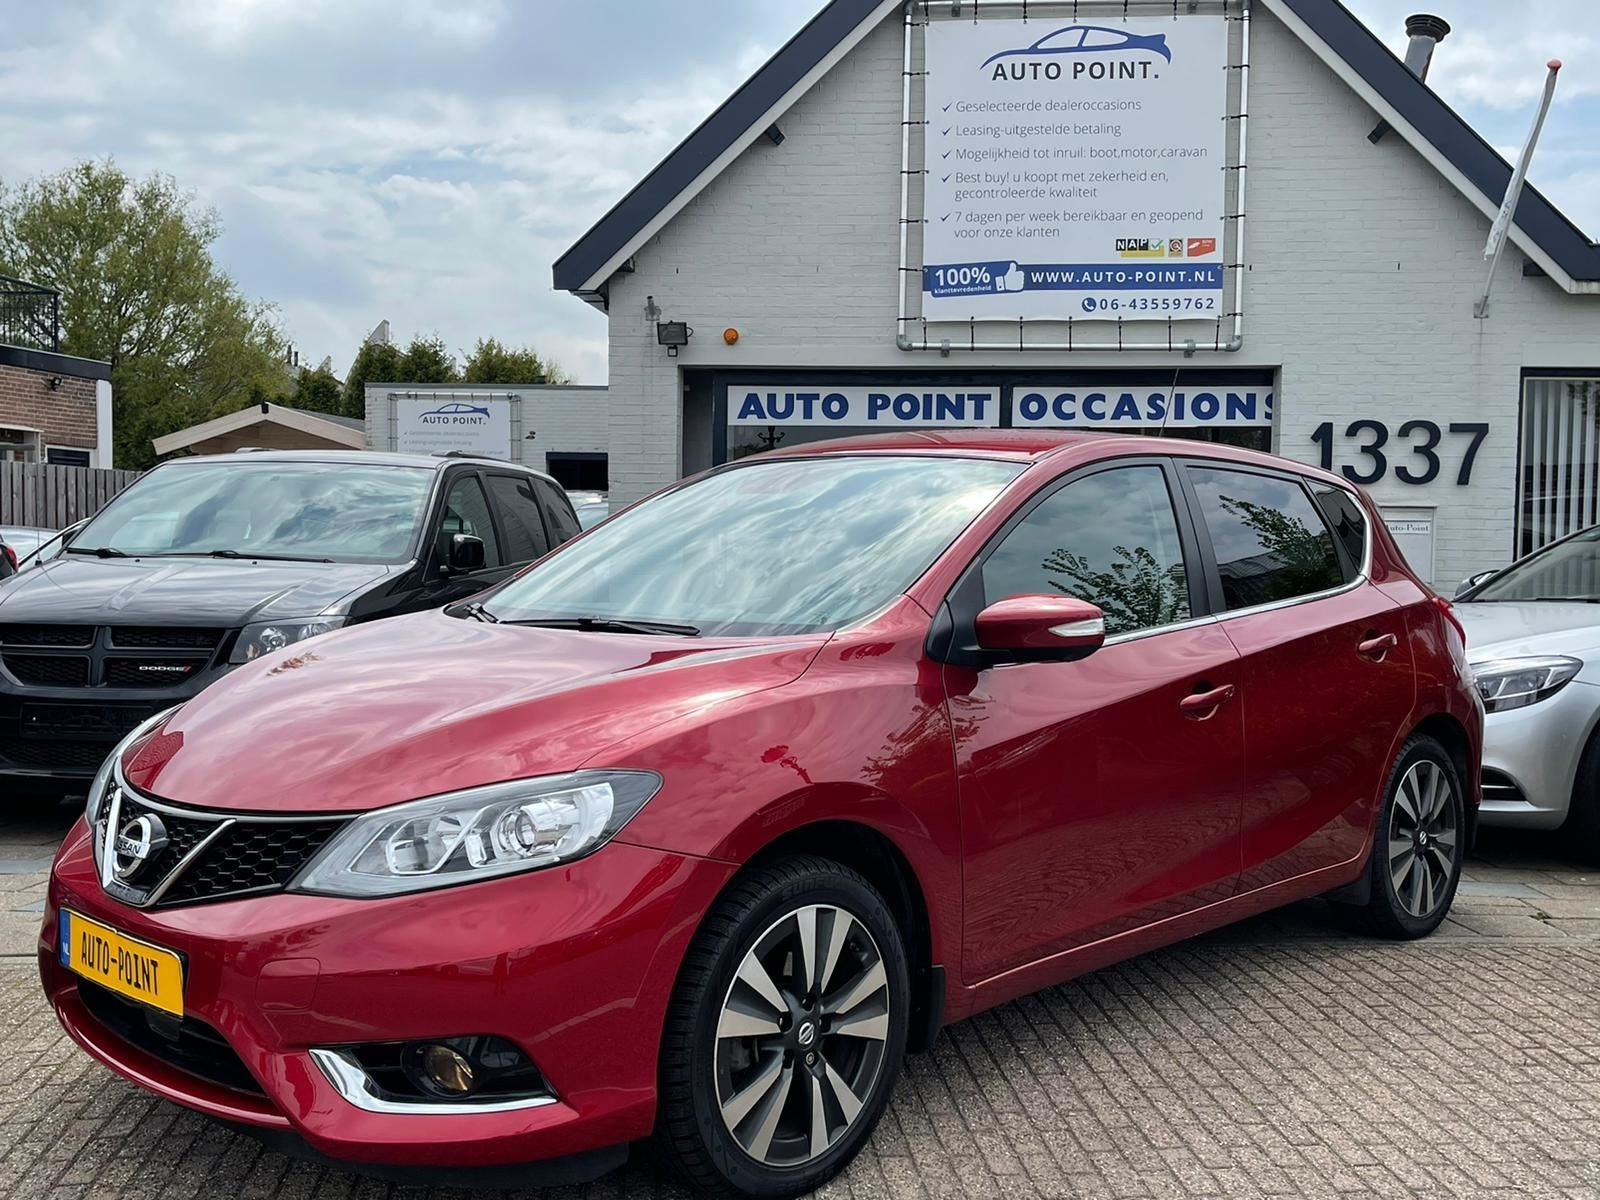 Nissan Pulsar occasion - Auto Point